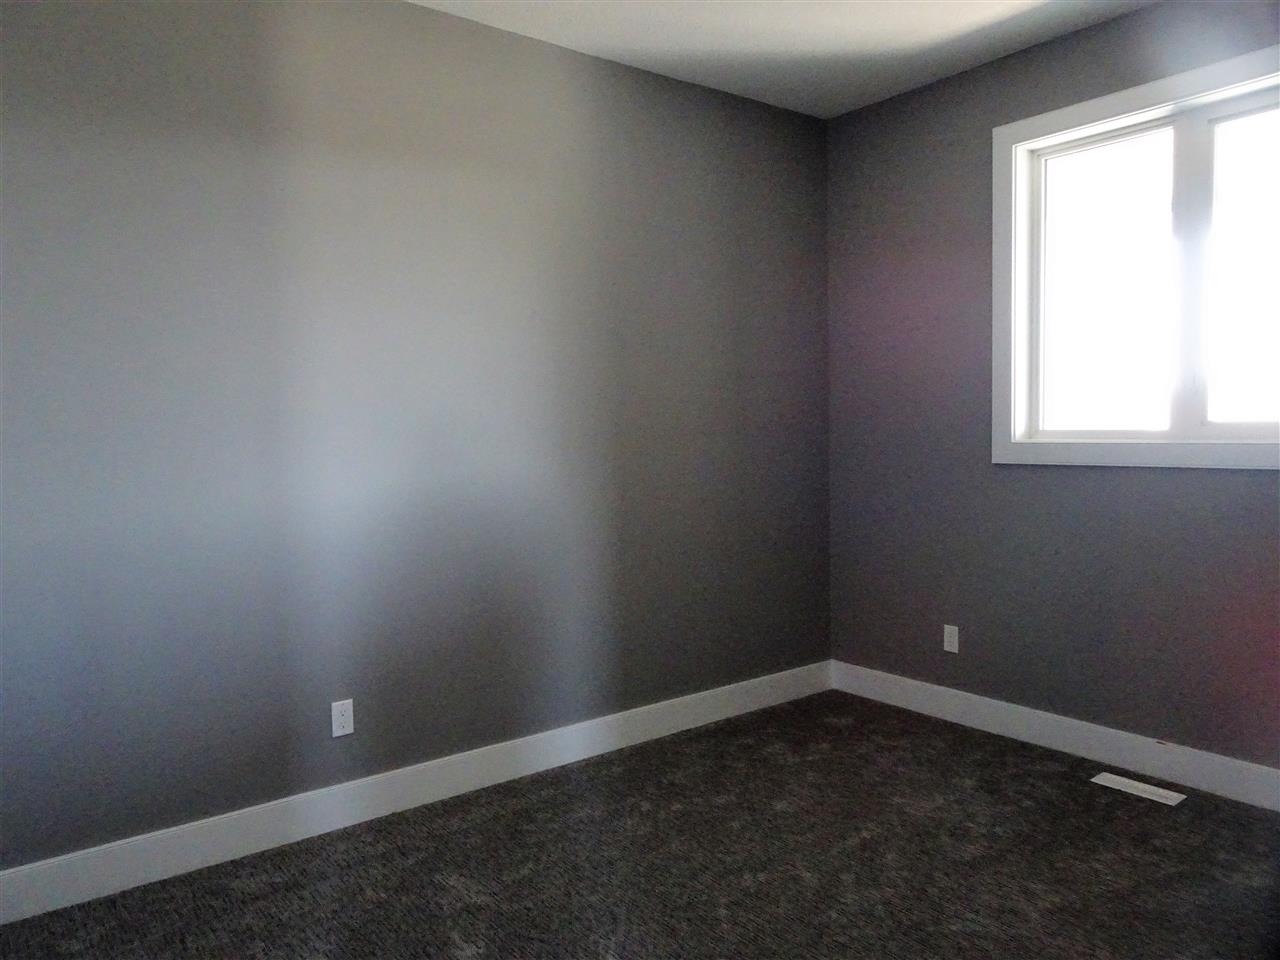 Photo 14: 7239 MAY Road in Edmonton: Zone 14 House Half Duplex for sale : MLS(r) # E4068551